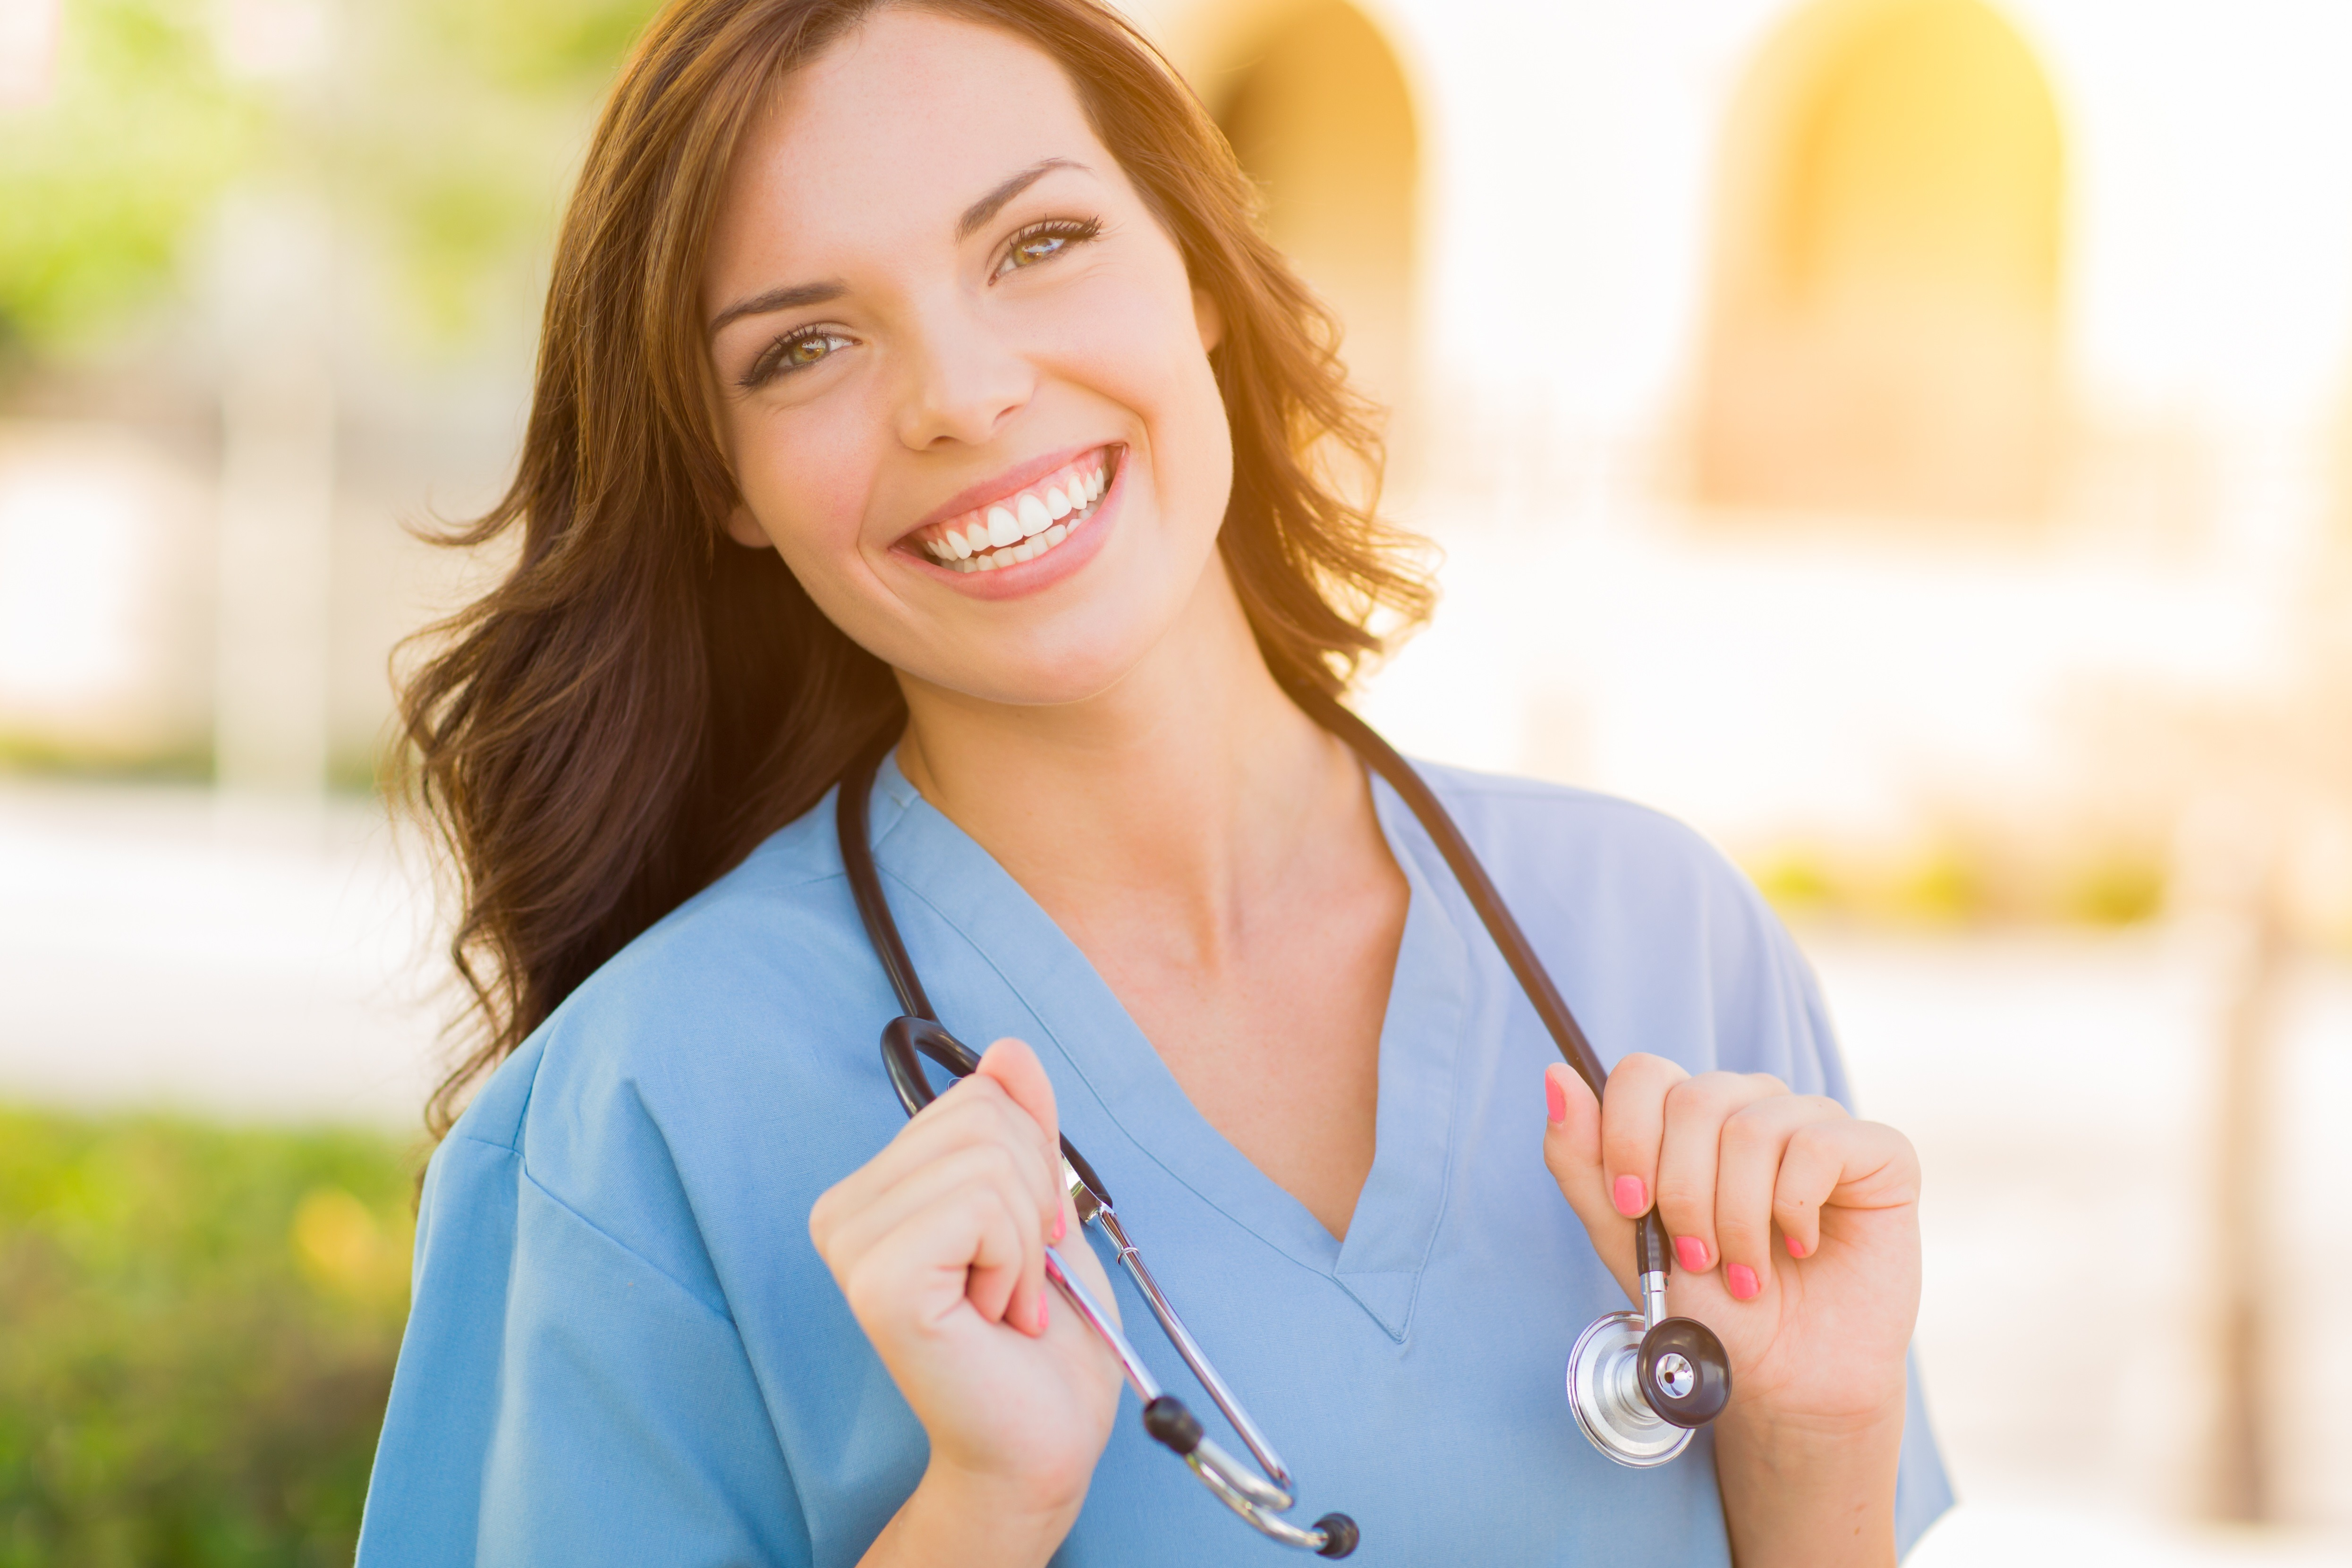 Female Nurse outdoors with stethoscope around her neck